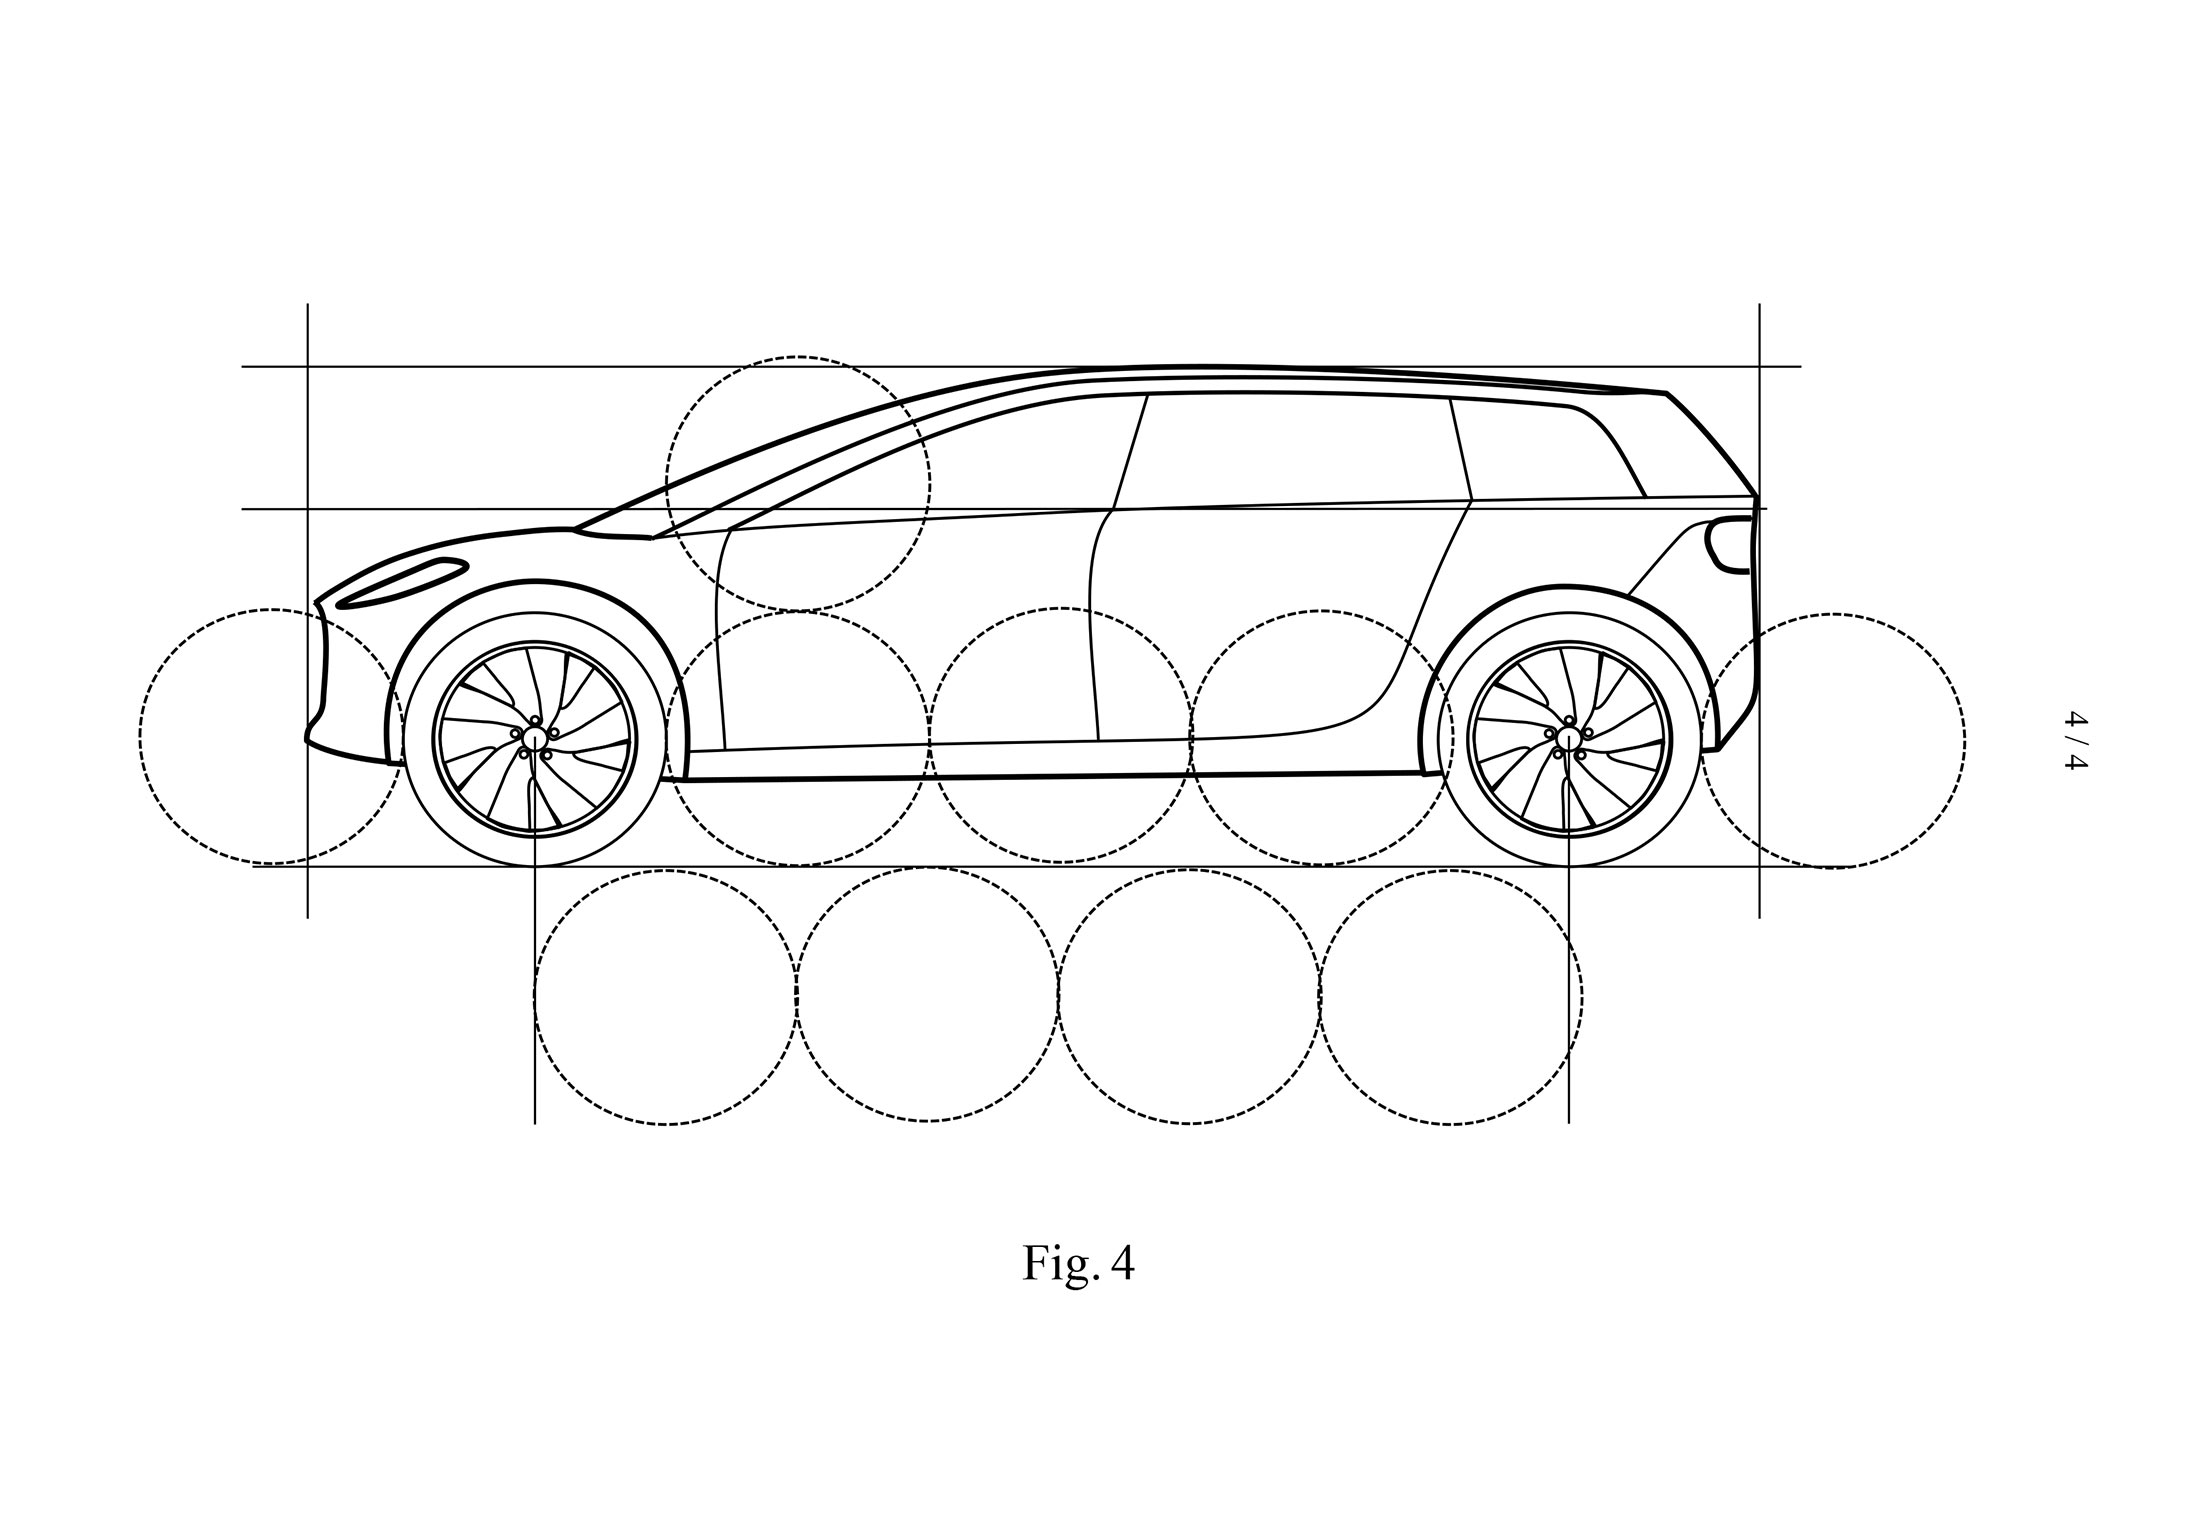 Dyson Patents Hint At A Tesla Model X Rival